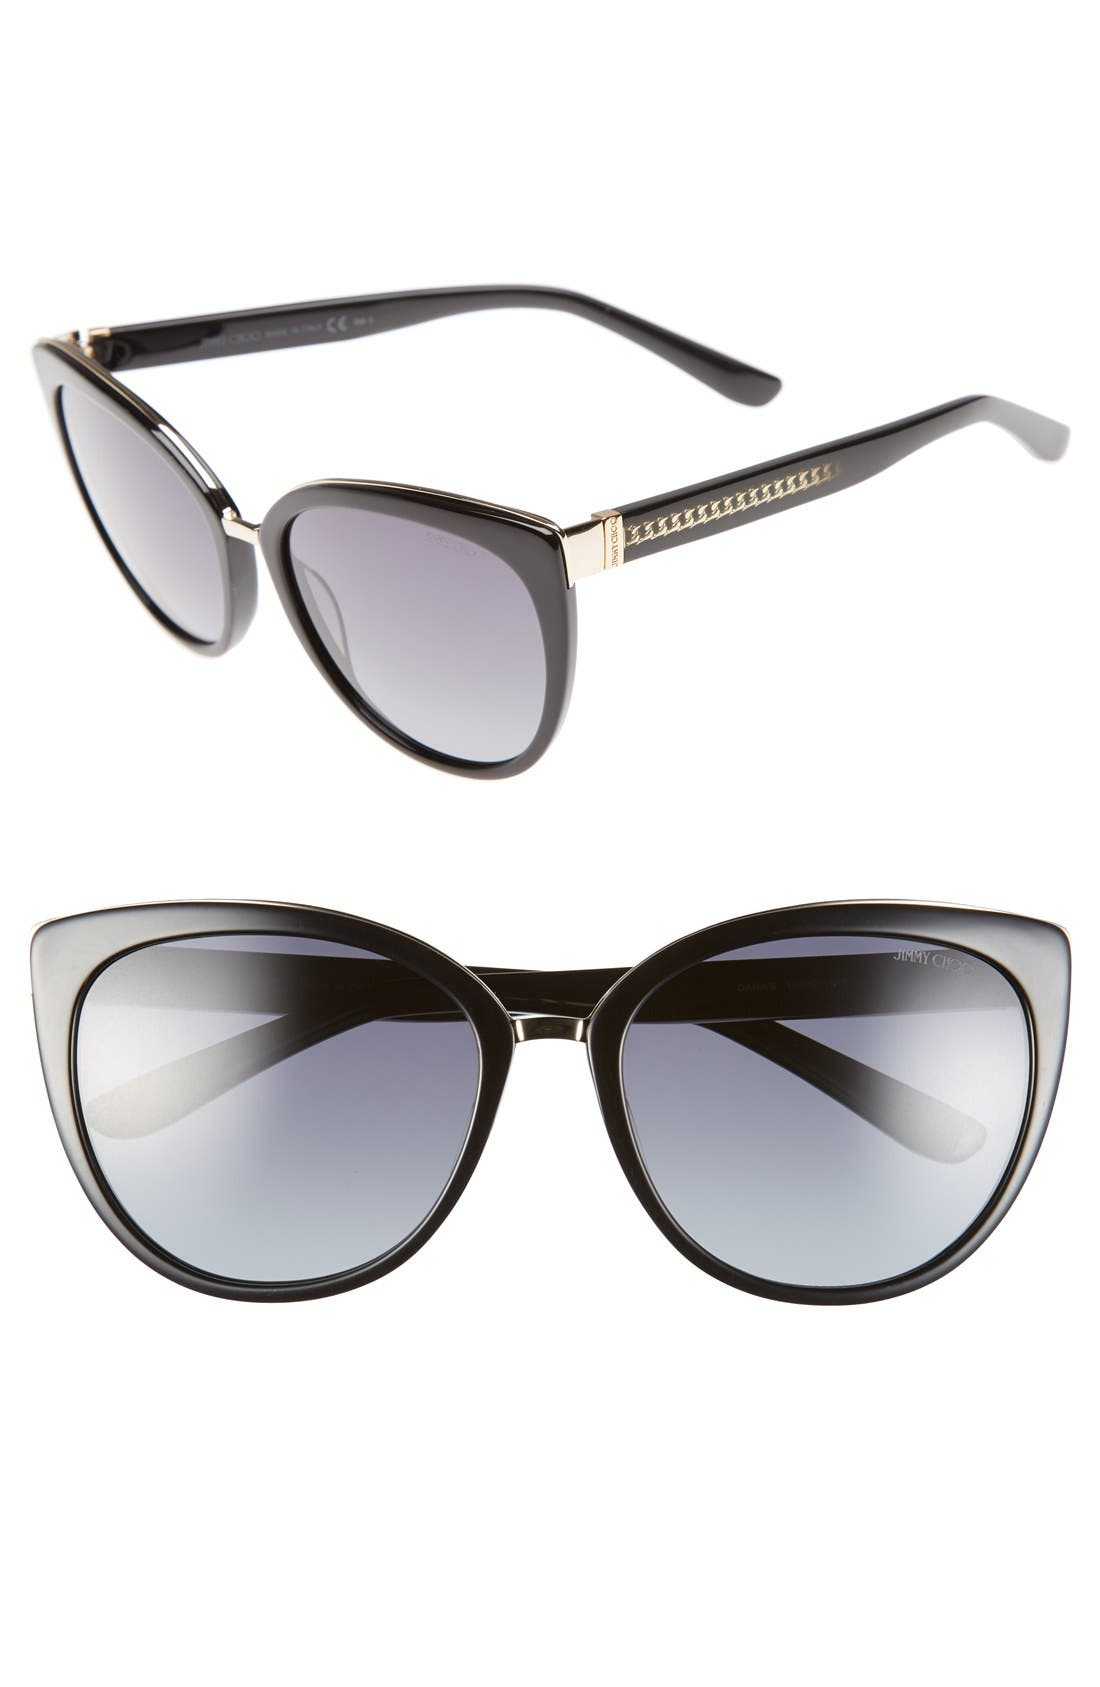 Main Image - Jimmy Choo 'Danas' 56mm Cat Eye Sunglasses